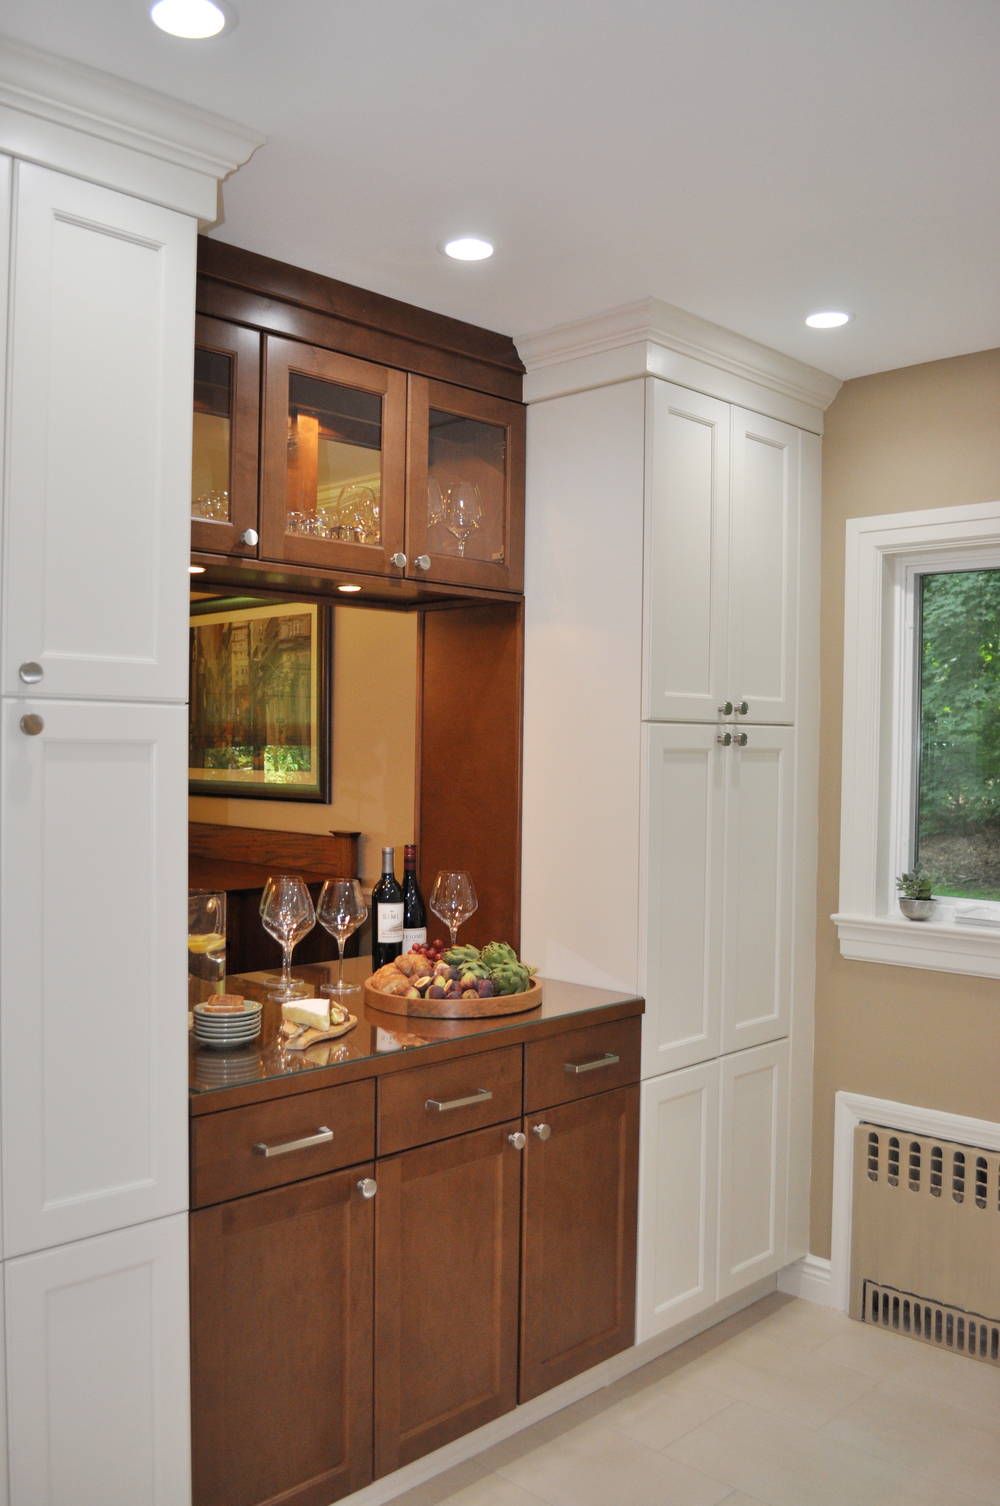 KAM DESIGN LLC_Kitchen Remodel_Passthrough_Pantry Cabinet_White Kitchen Cabinets_Wood Stained Kitchen Cabinets_Buffet_Westchester County NY Home.jpg